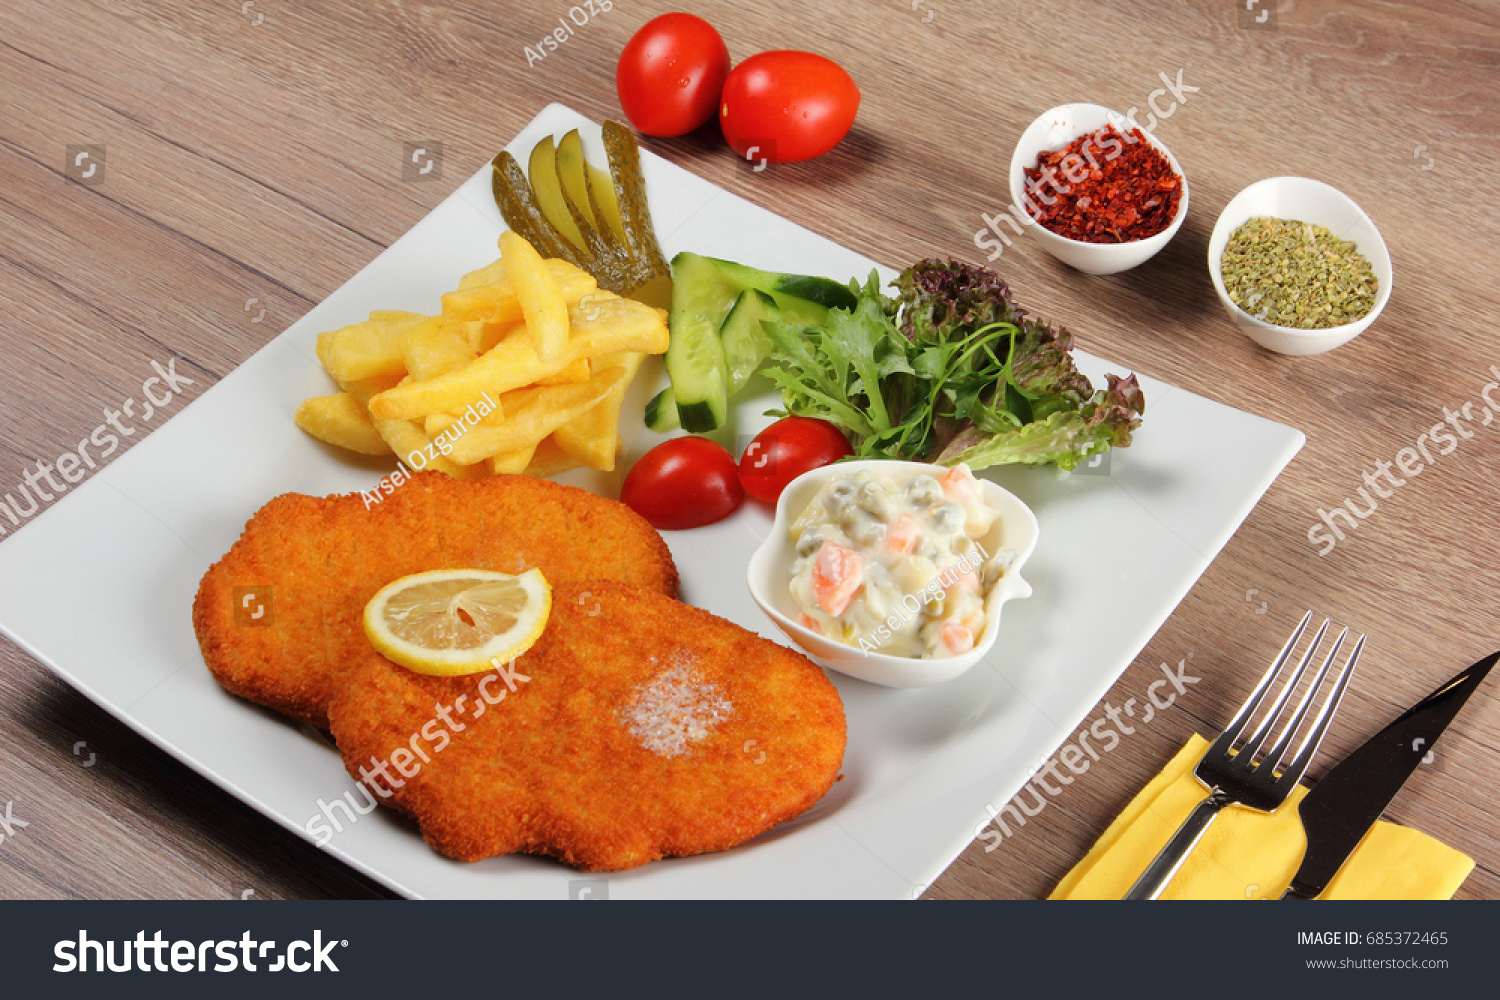 Schnitzel Restaurant Chicken Schnitzel Restaurant Menu Stock Photo Edit Now 685372465